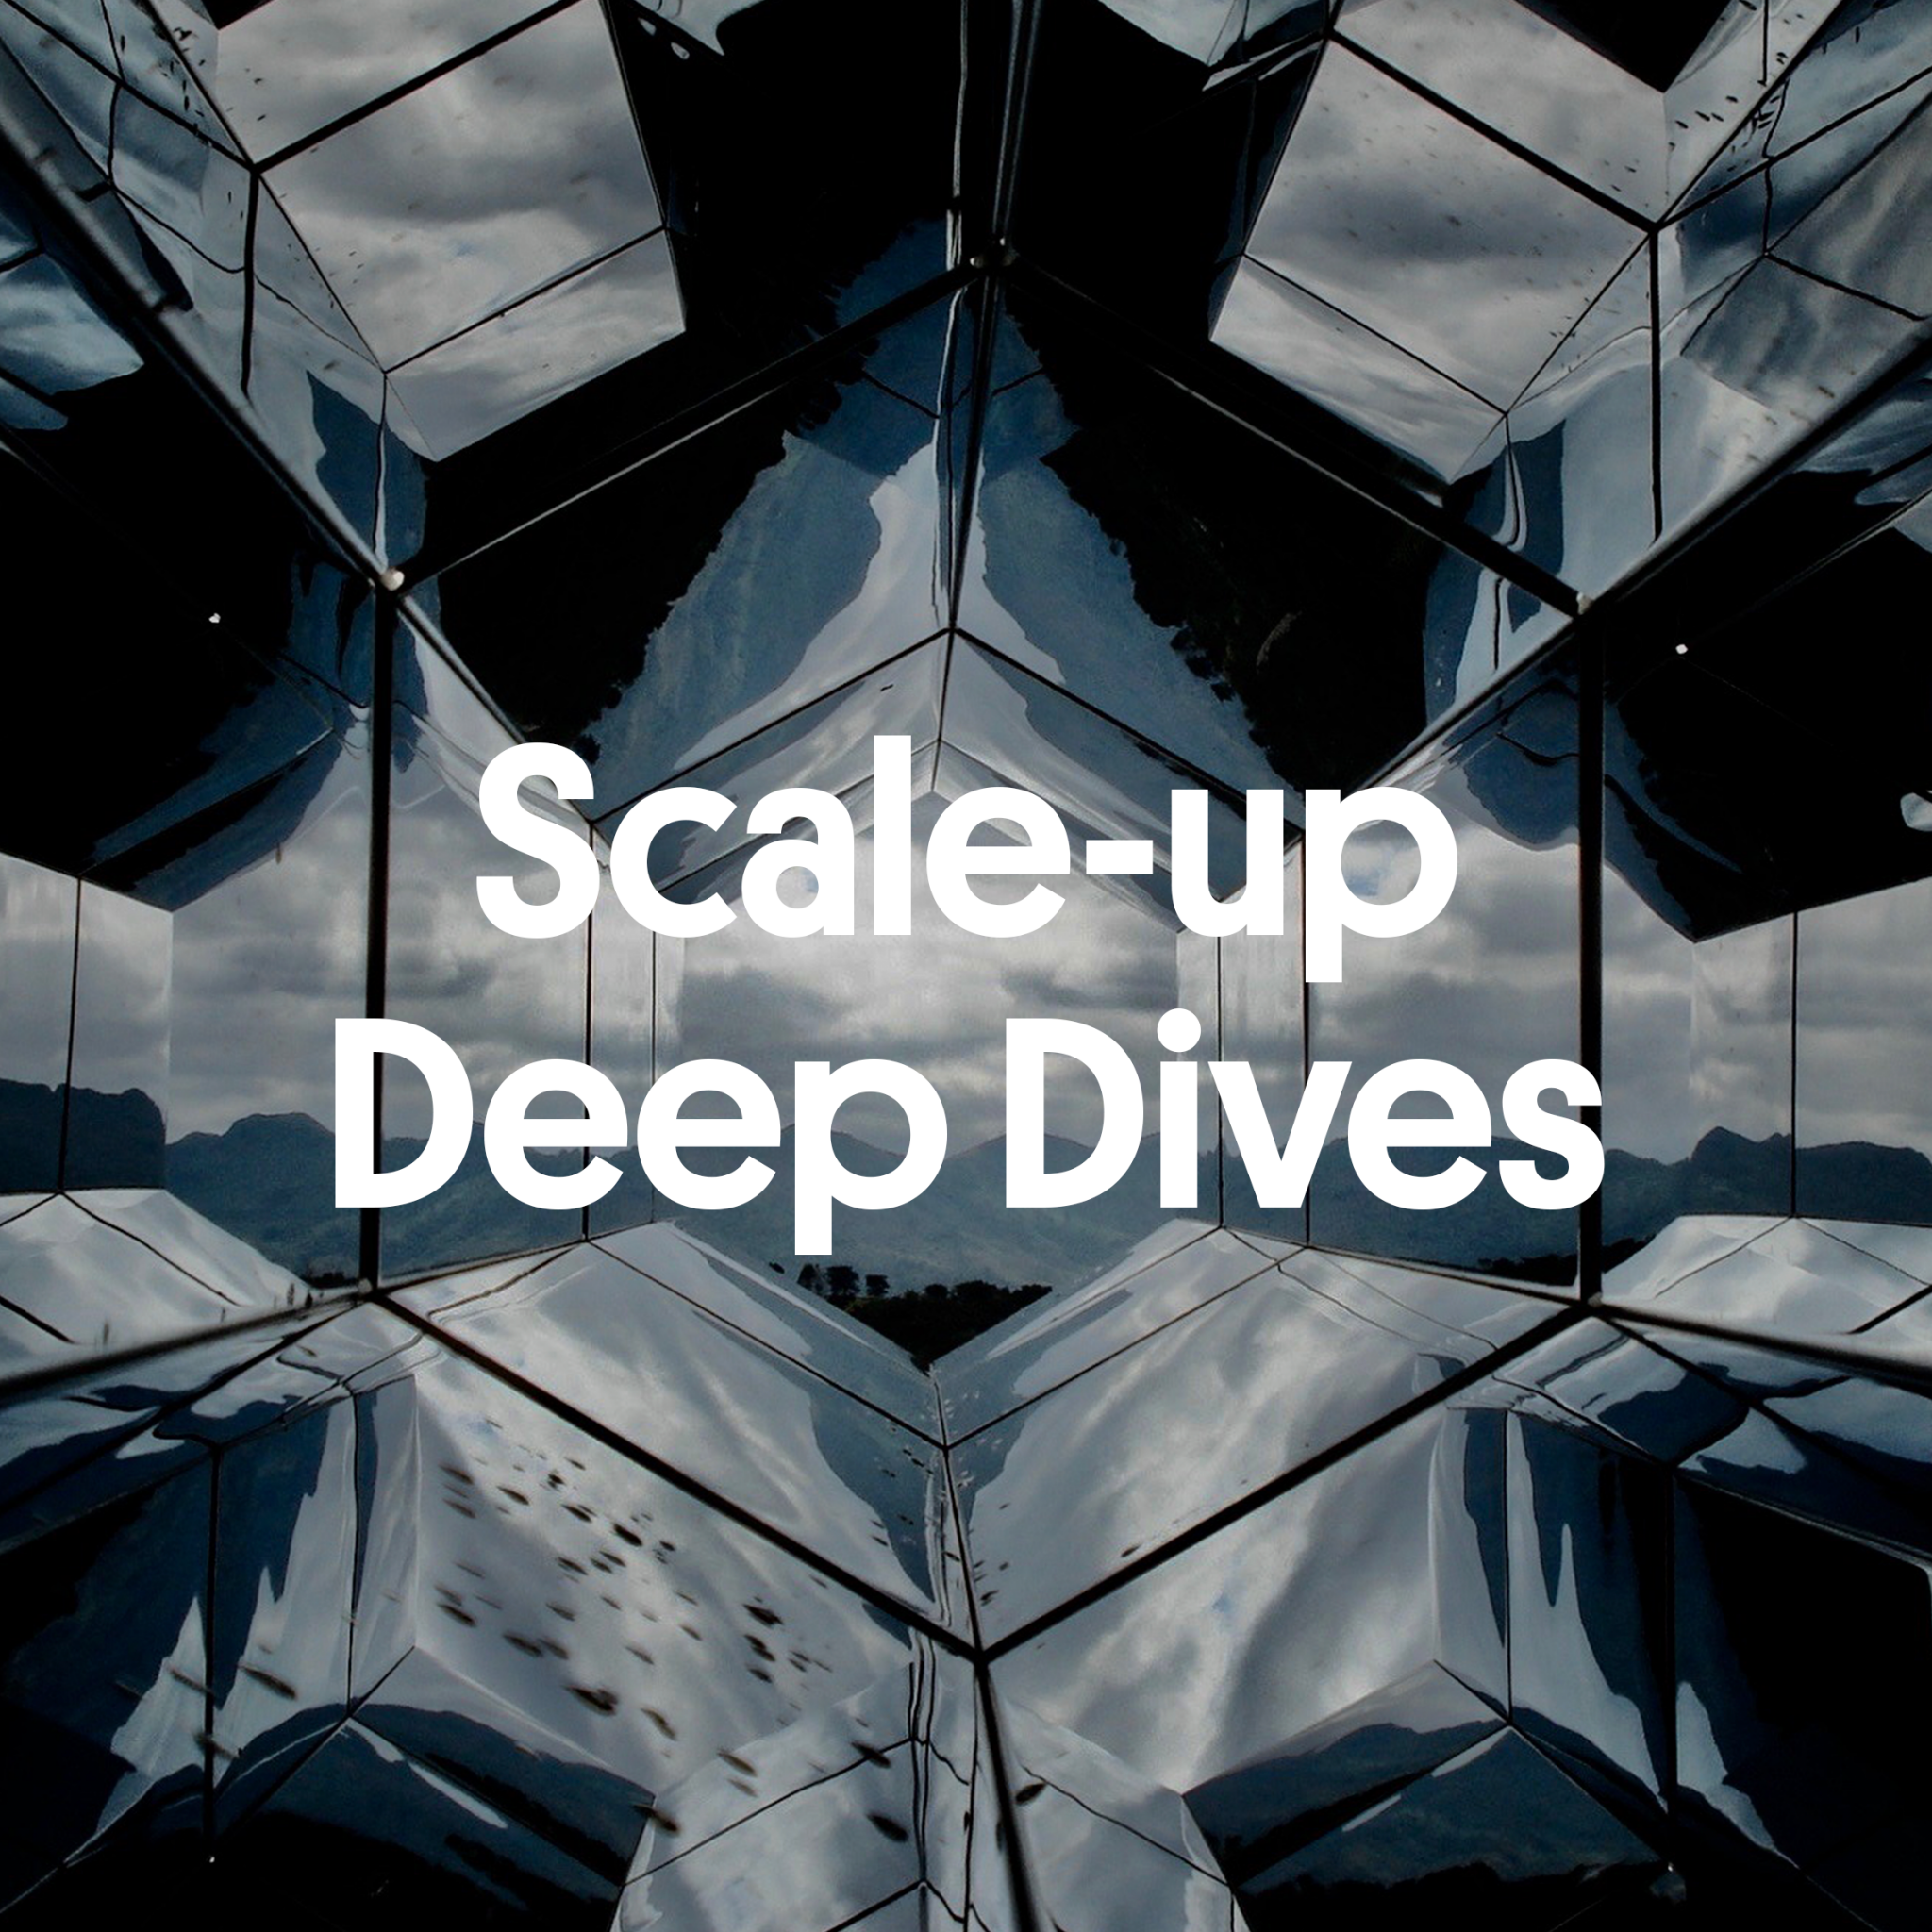 ScaleUp Deep Dives